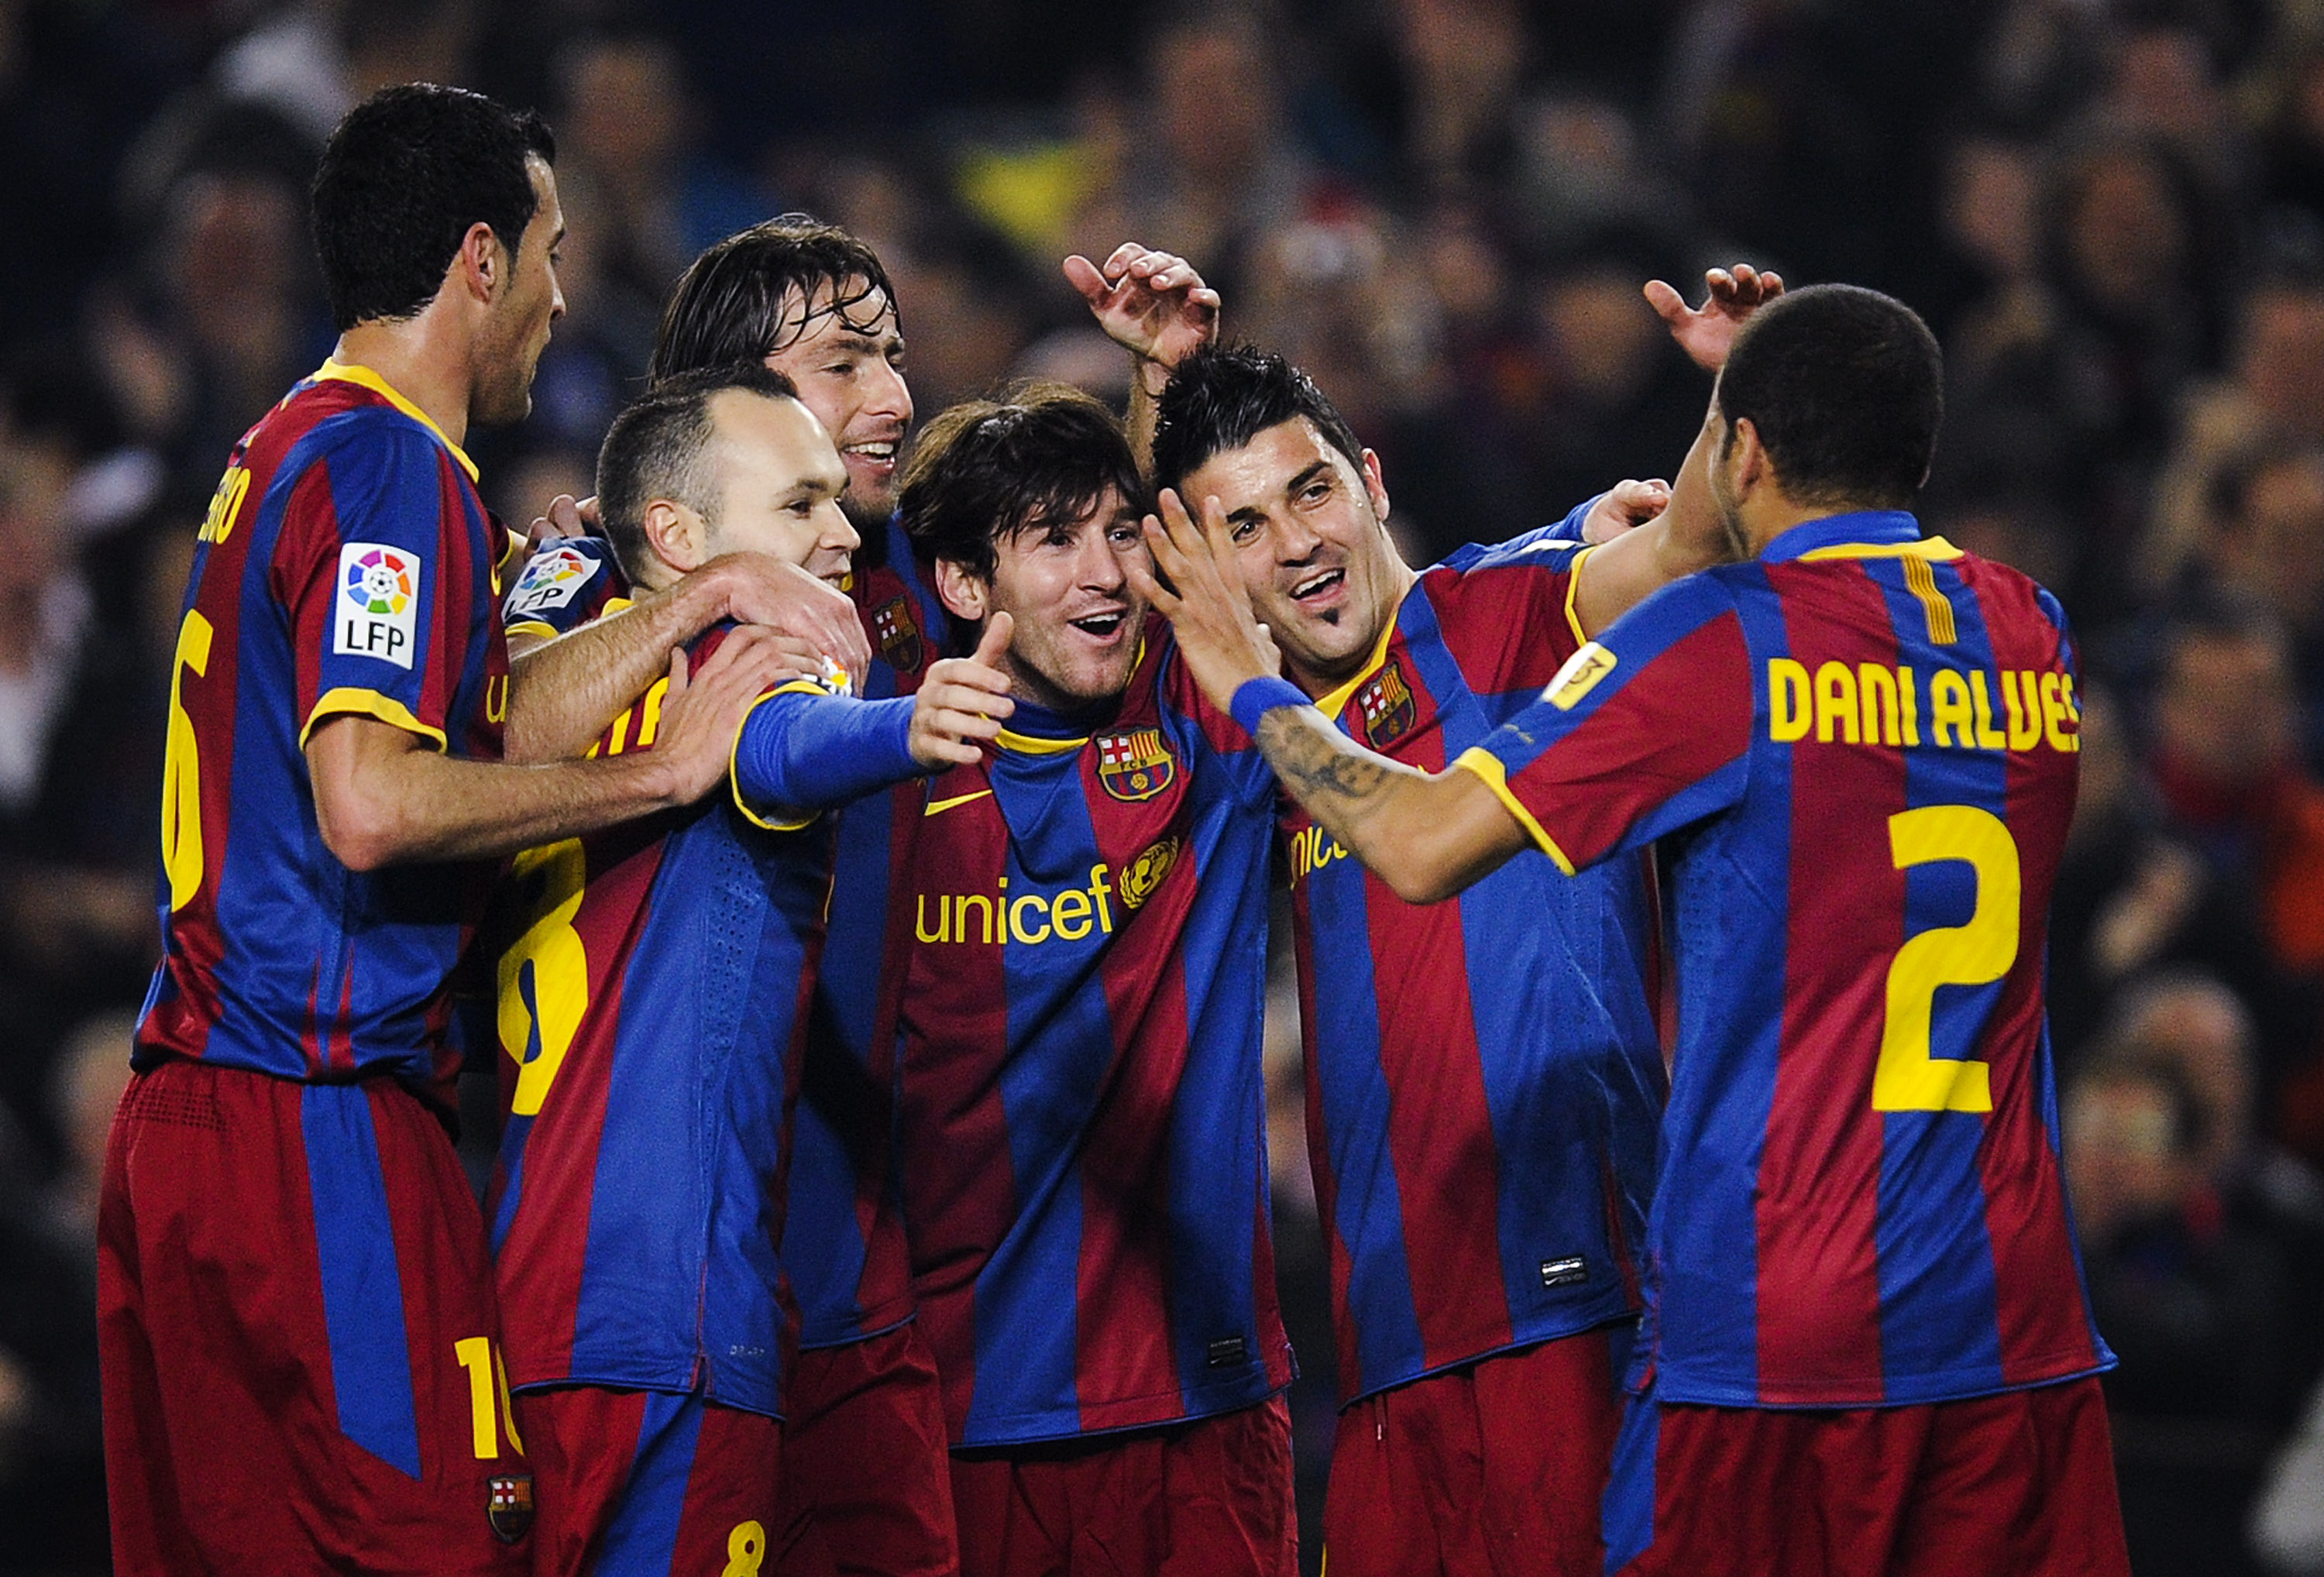 BARCELONA, SPAIN - FEBRUARY 05:  Lionel Messi of Barcelona (3rdR) celebrates with his teammates after scoring his first team's goal during the La Liga match between Barcelona and Atletico de Madrid at Camp Nou on February 5, 2011 in Barcelona, Spain.  (Ph